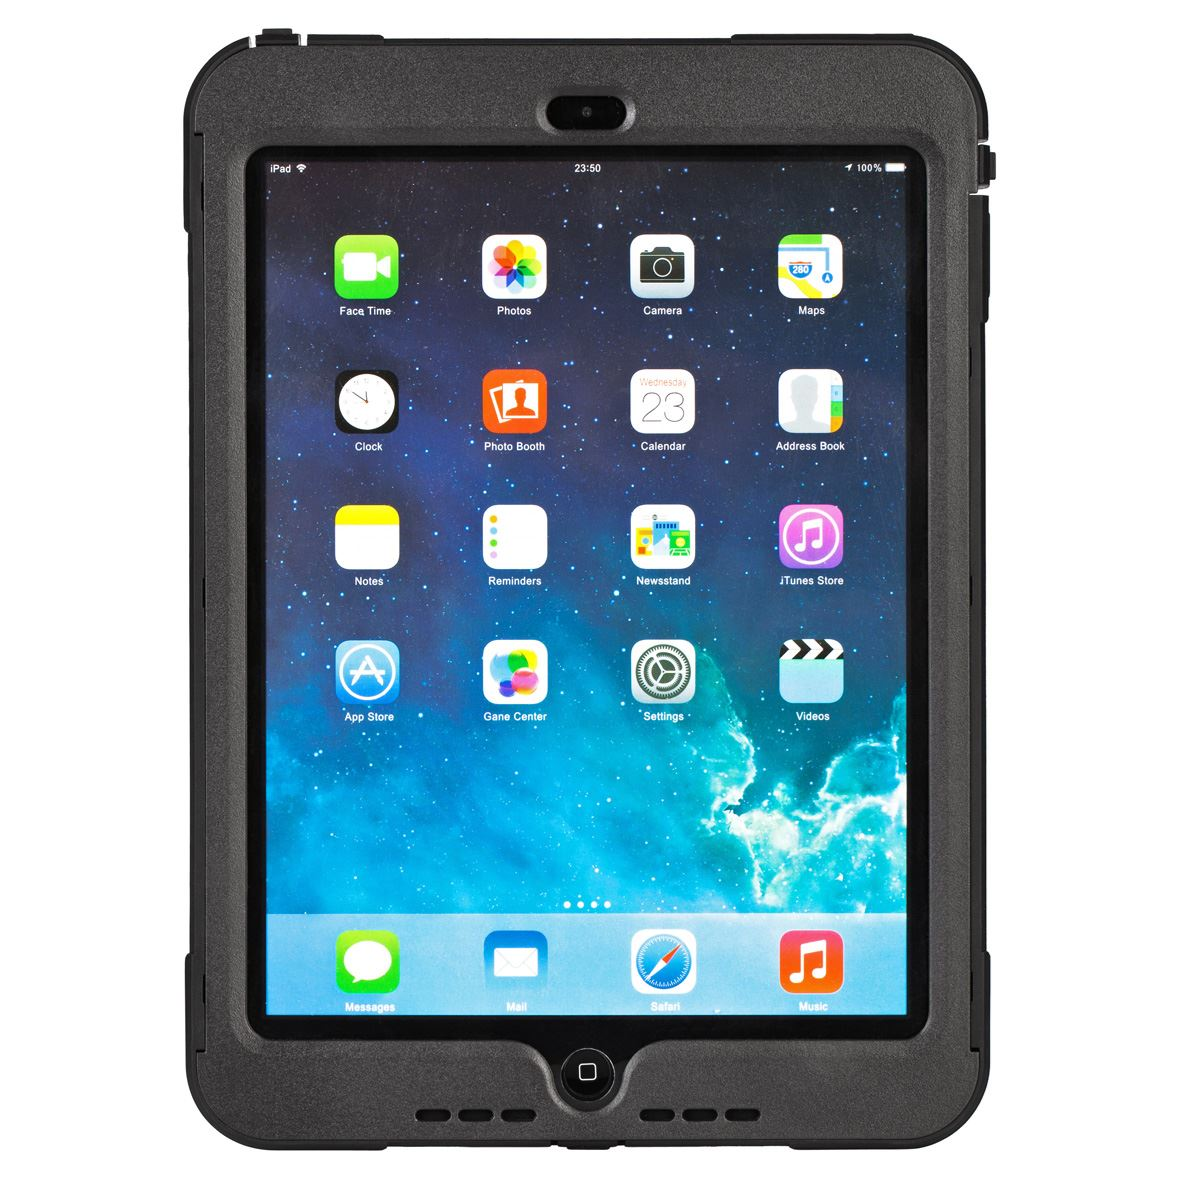 targus safeport apple ipad air protection case stand dust screen protector black ebay. Black Bedroom Furniture Sets. Home Design Ideas